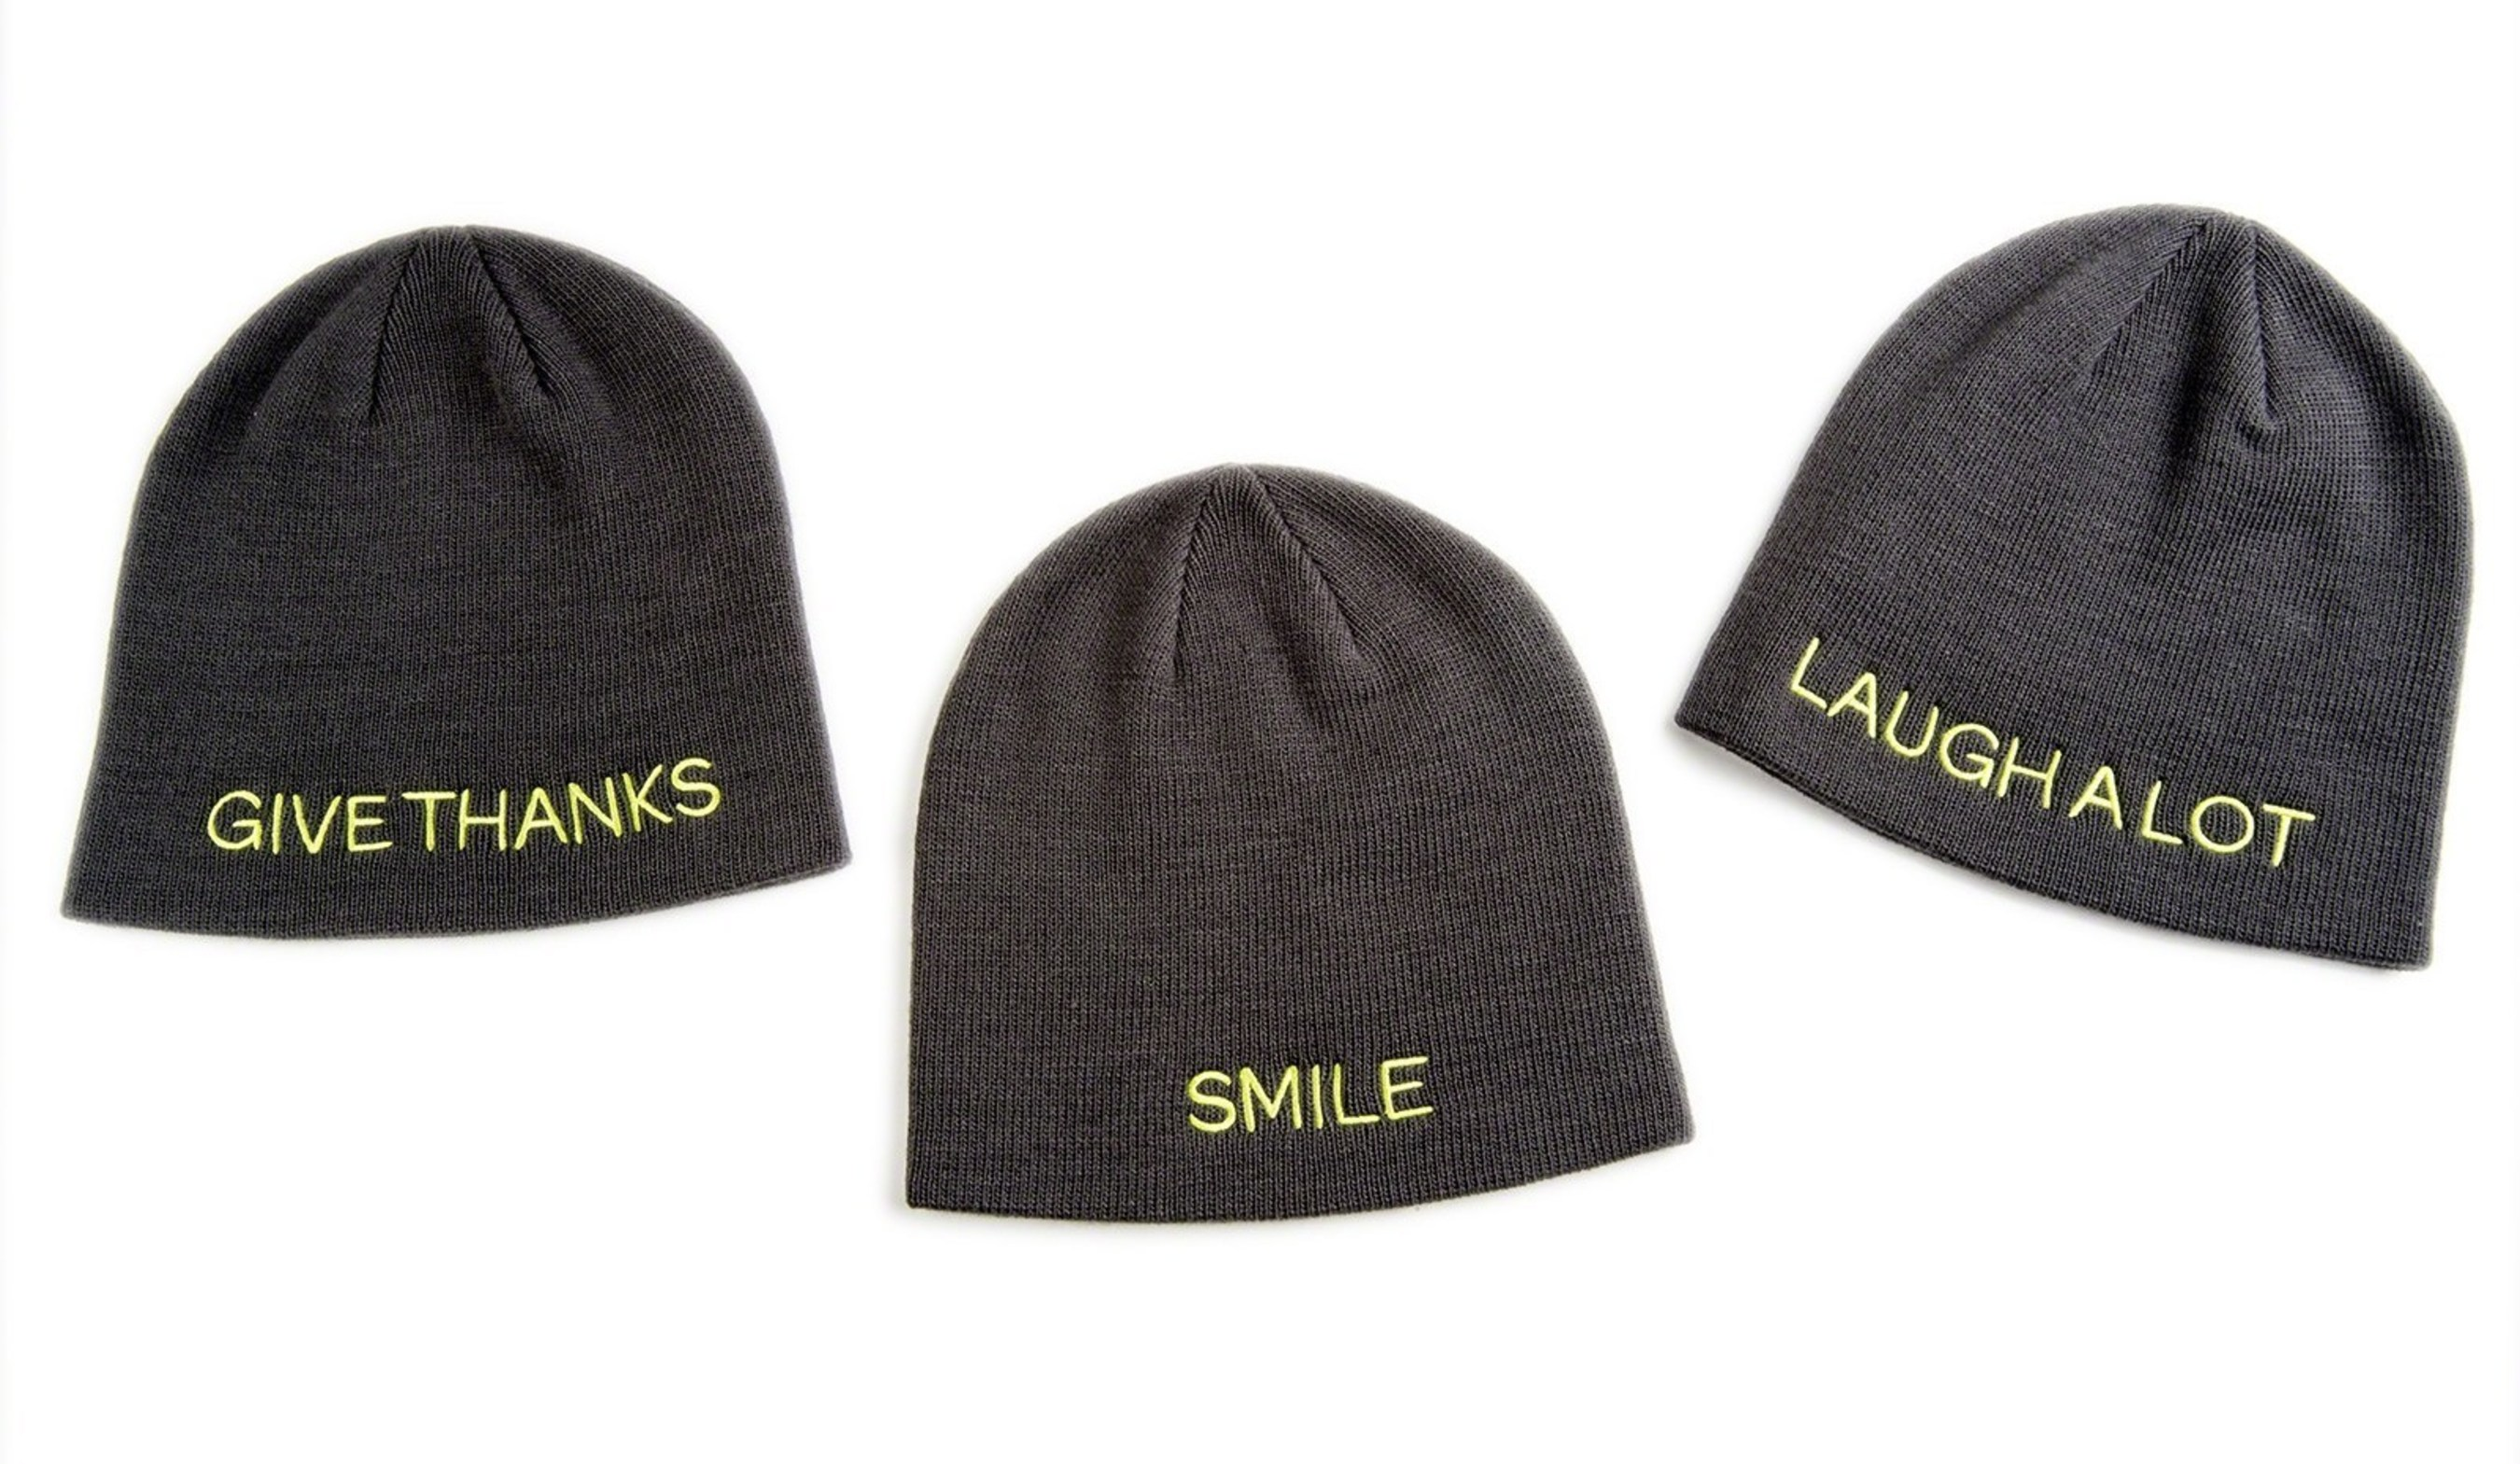 "The Giving Hat(TM) is a stylish winter knit hat, one-size-fits-all and available in three versions embroidered with messages inspired by St. Jude patients and their families: ""Smile,"" ""Laugh A Lot,"" and ""Give Thanks."" The Giving Hat(TM) is available exclusively this holiday season at all Kmart stores or online at kmart.com/stjude"